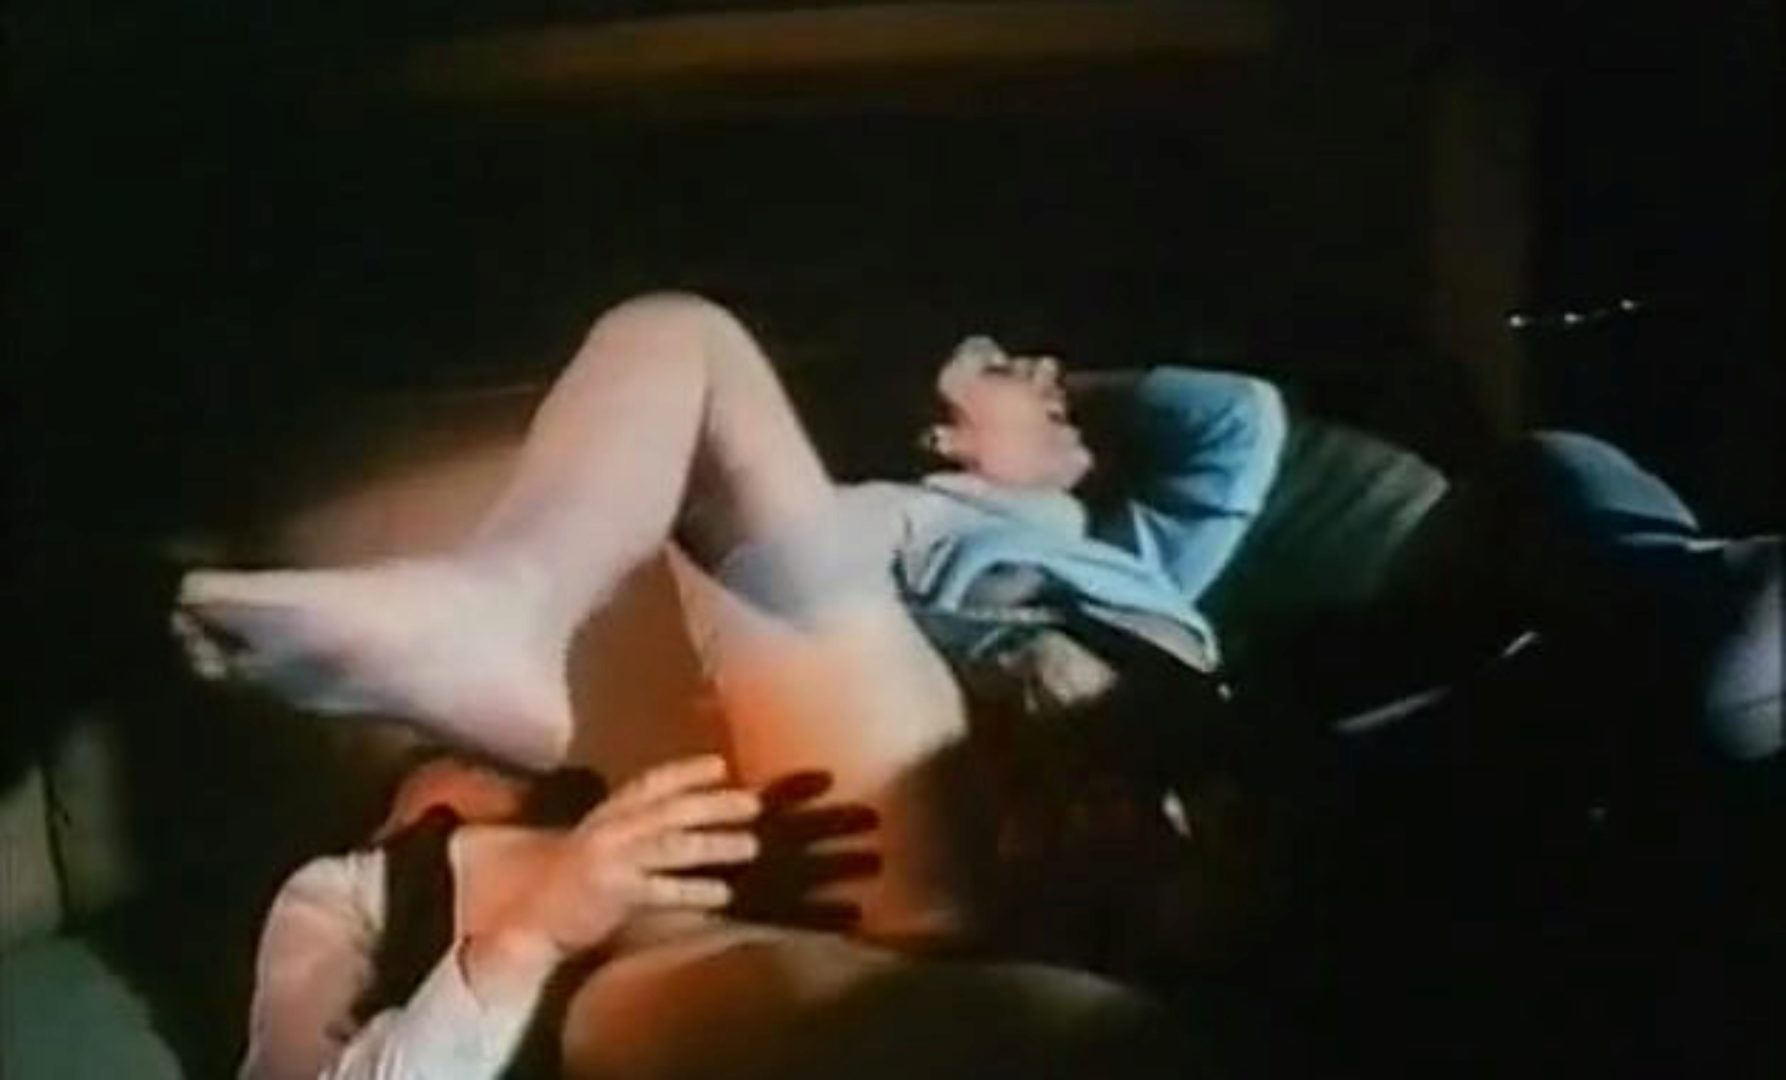 French Infernal (1983) Beautiful old-school with Eva Kleber and Marilyn Jess. Pretty worthy old-school pornography video